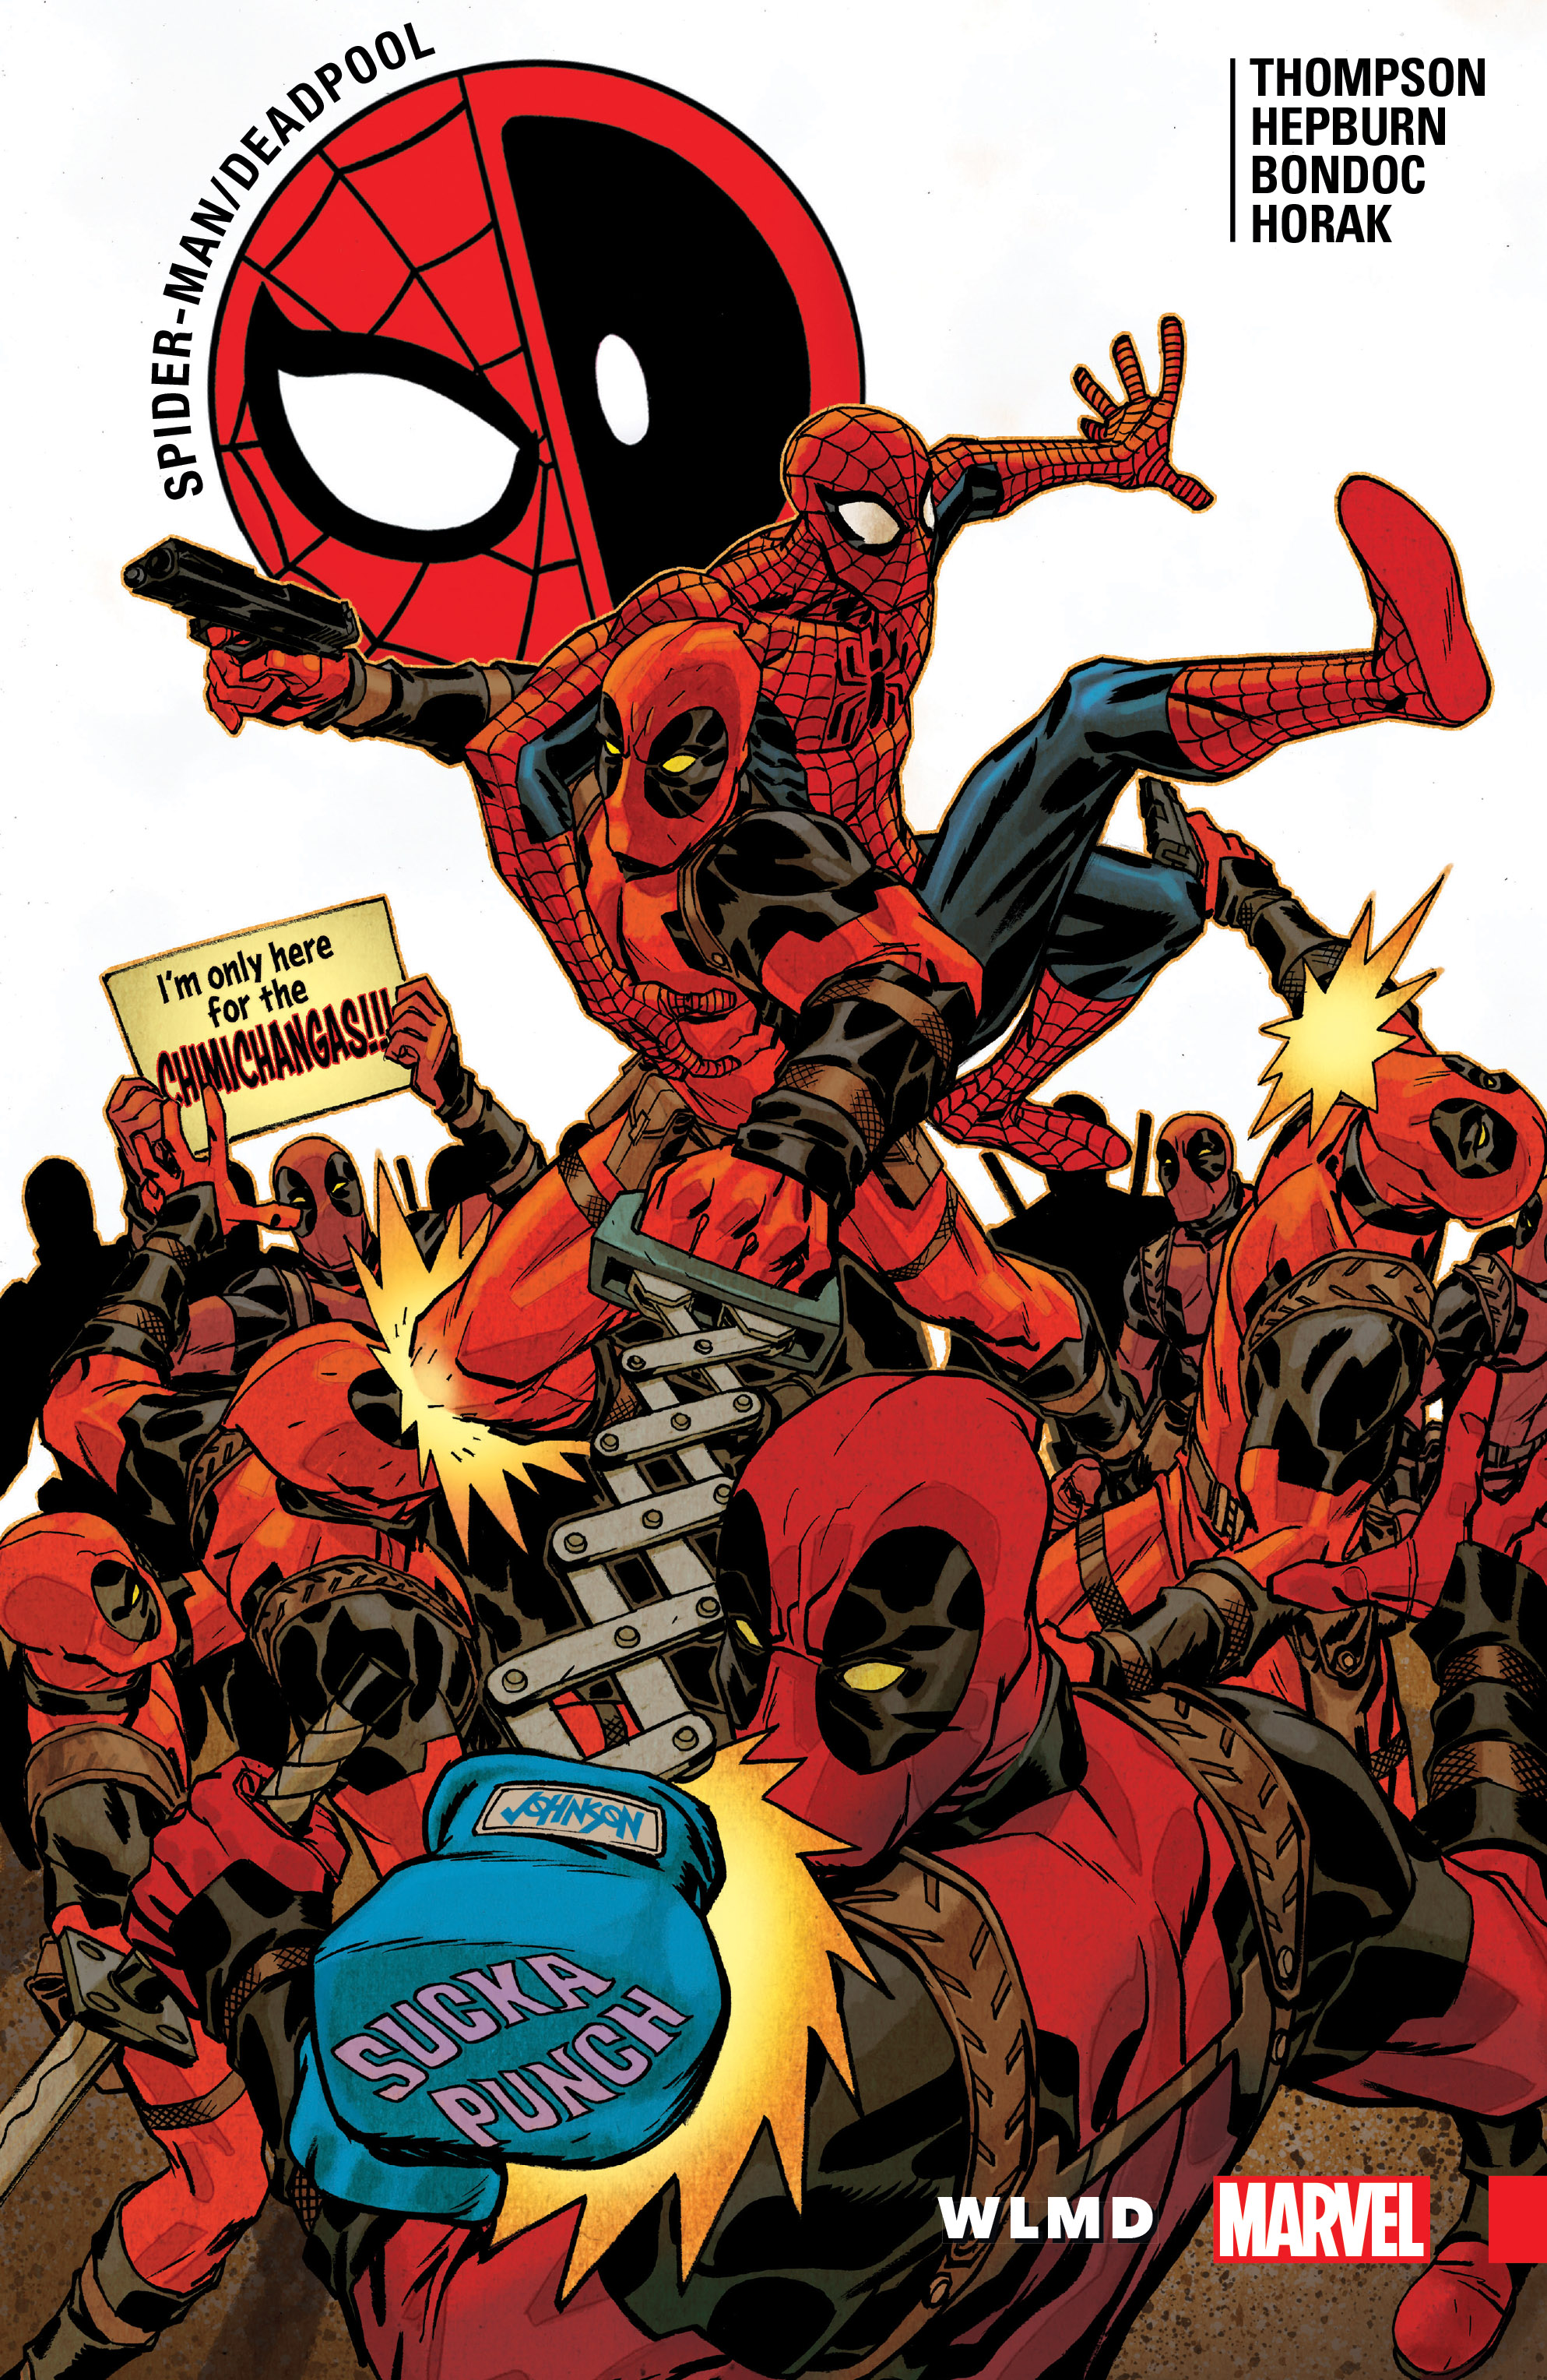 Spider-Man/Deadpool Vol. 6: WLMD (Trade Paperback)